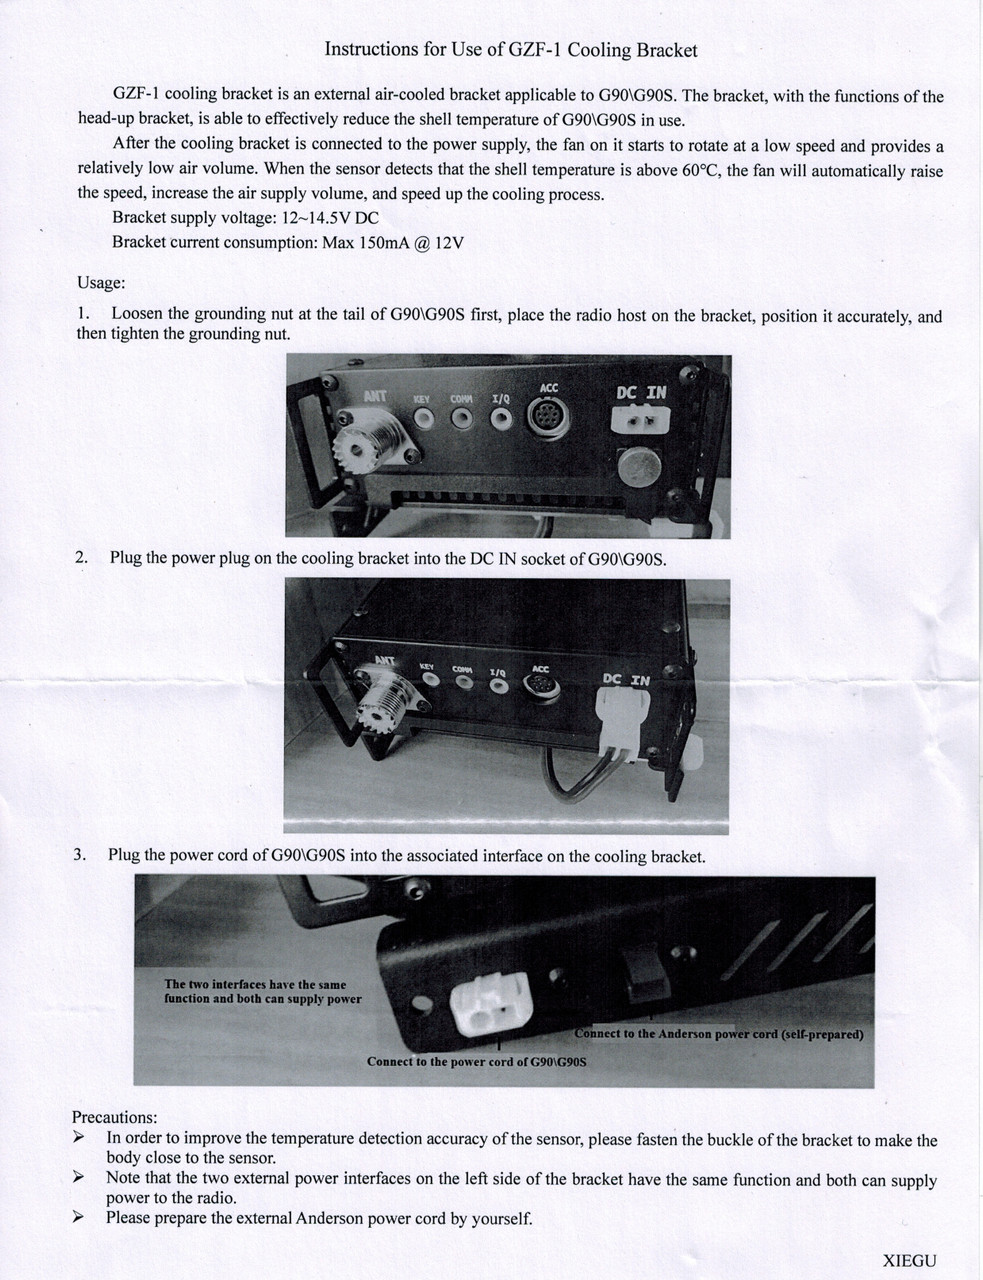 This is the instructions for assembling the fan on the G90